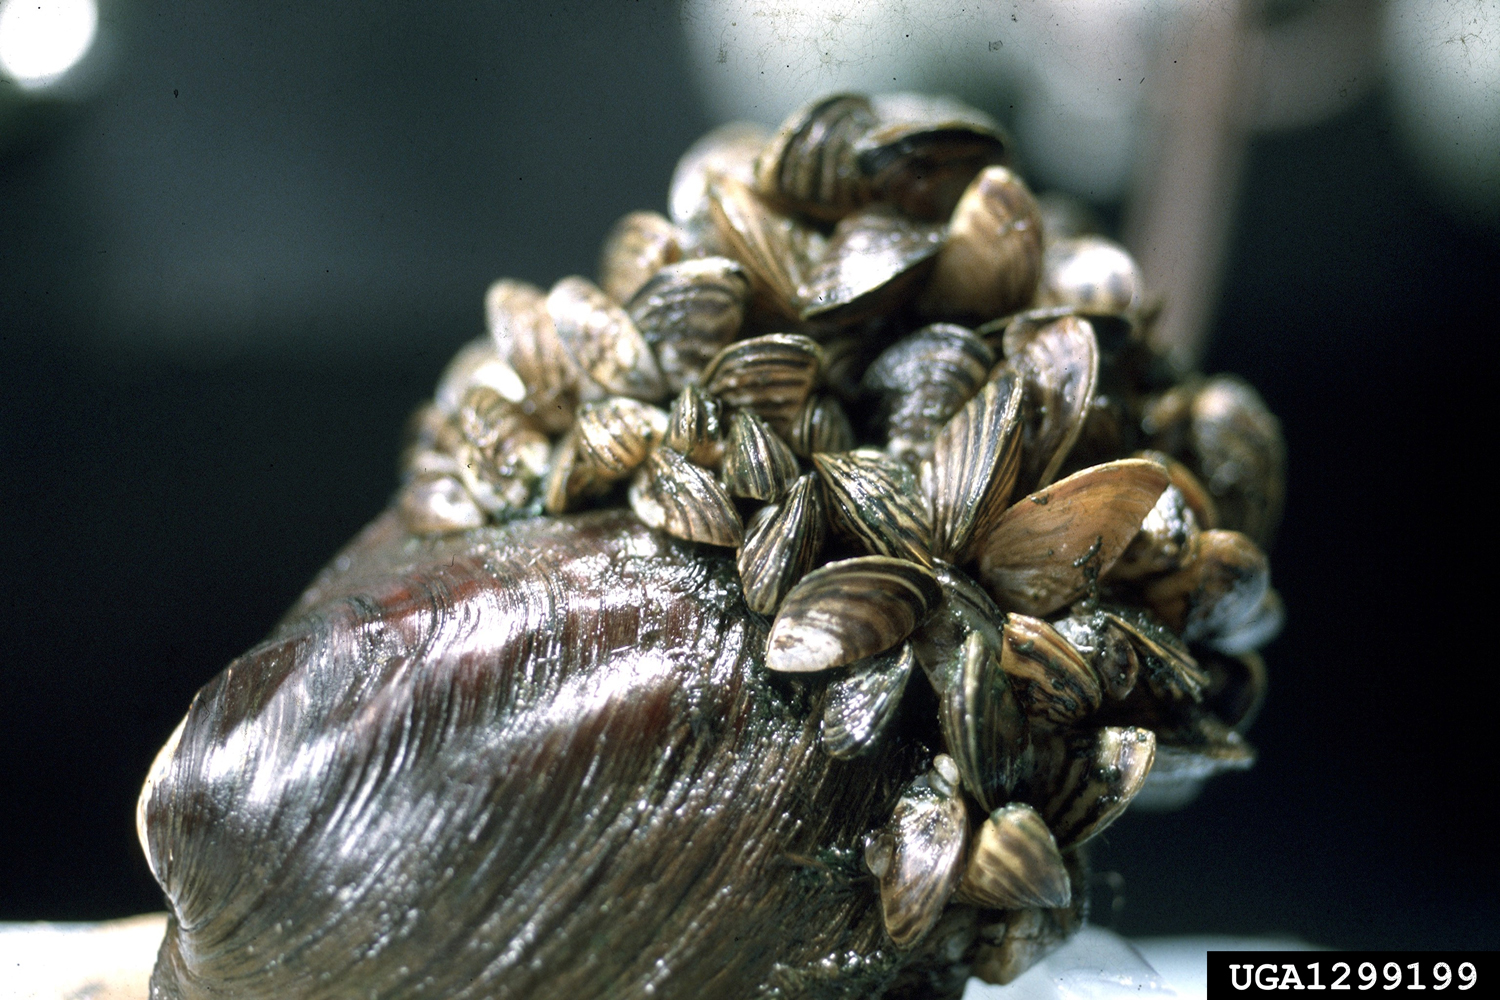 In addition to nutrient pollution, we also spread new species all across the world, like these zebra muscles.